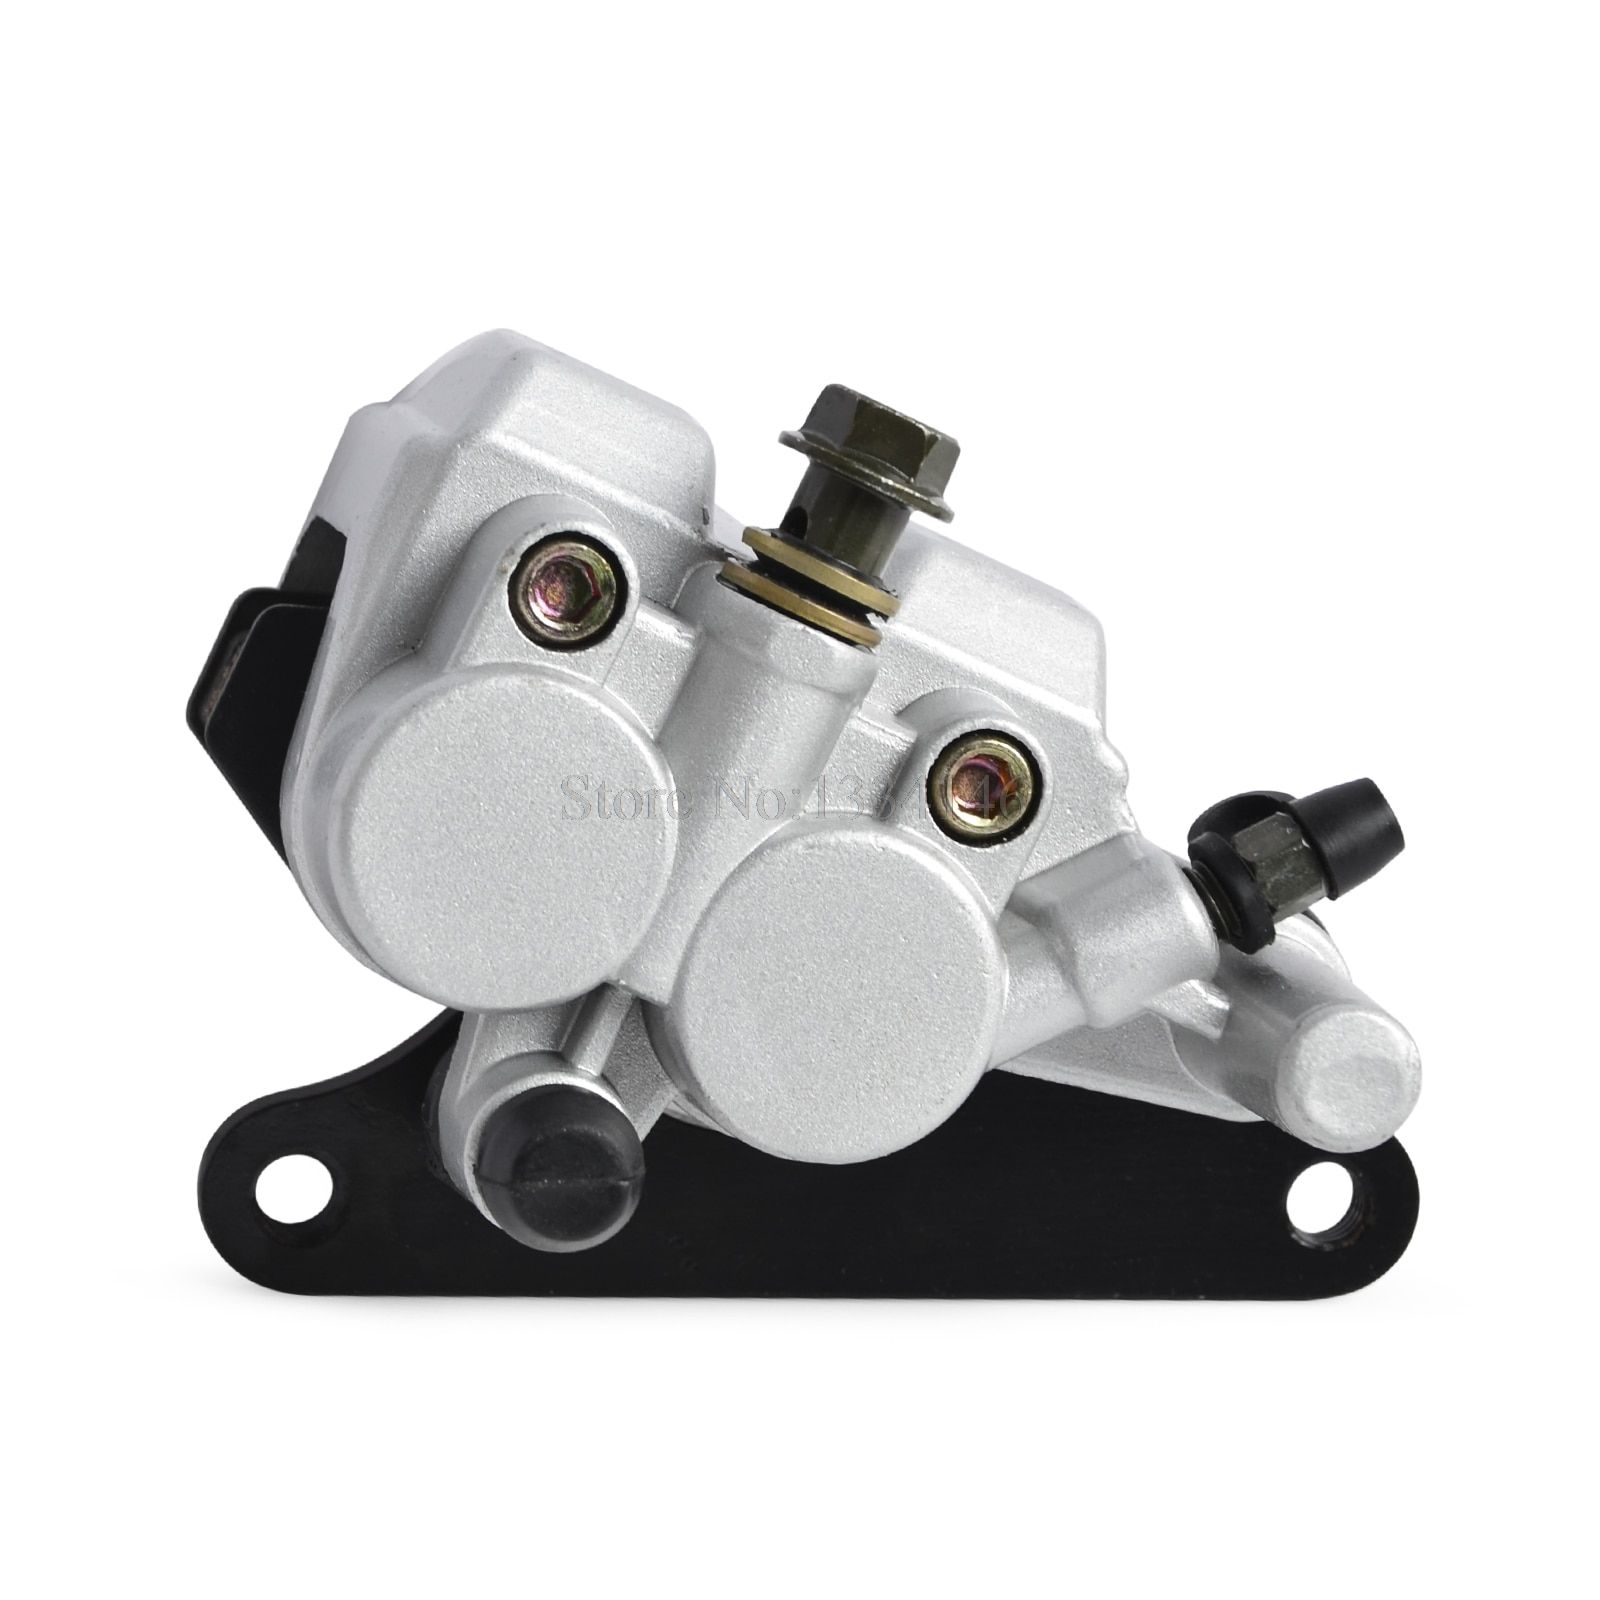 Motorcycle Rear Brake Caliper For Chinese 200cc 250cc Go Kart ATV Scooters GY6